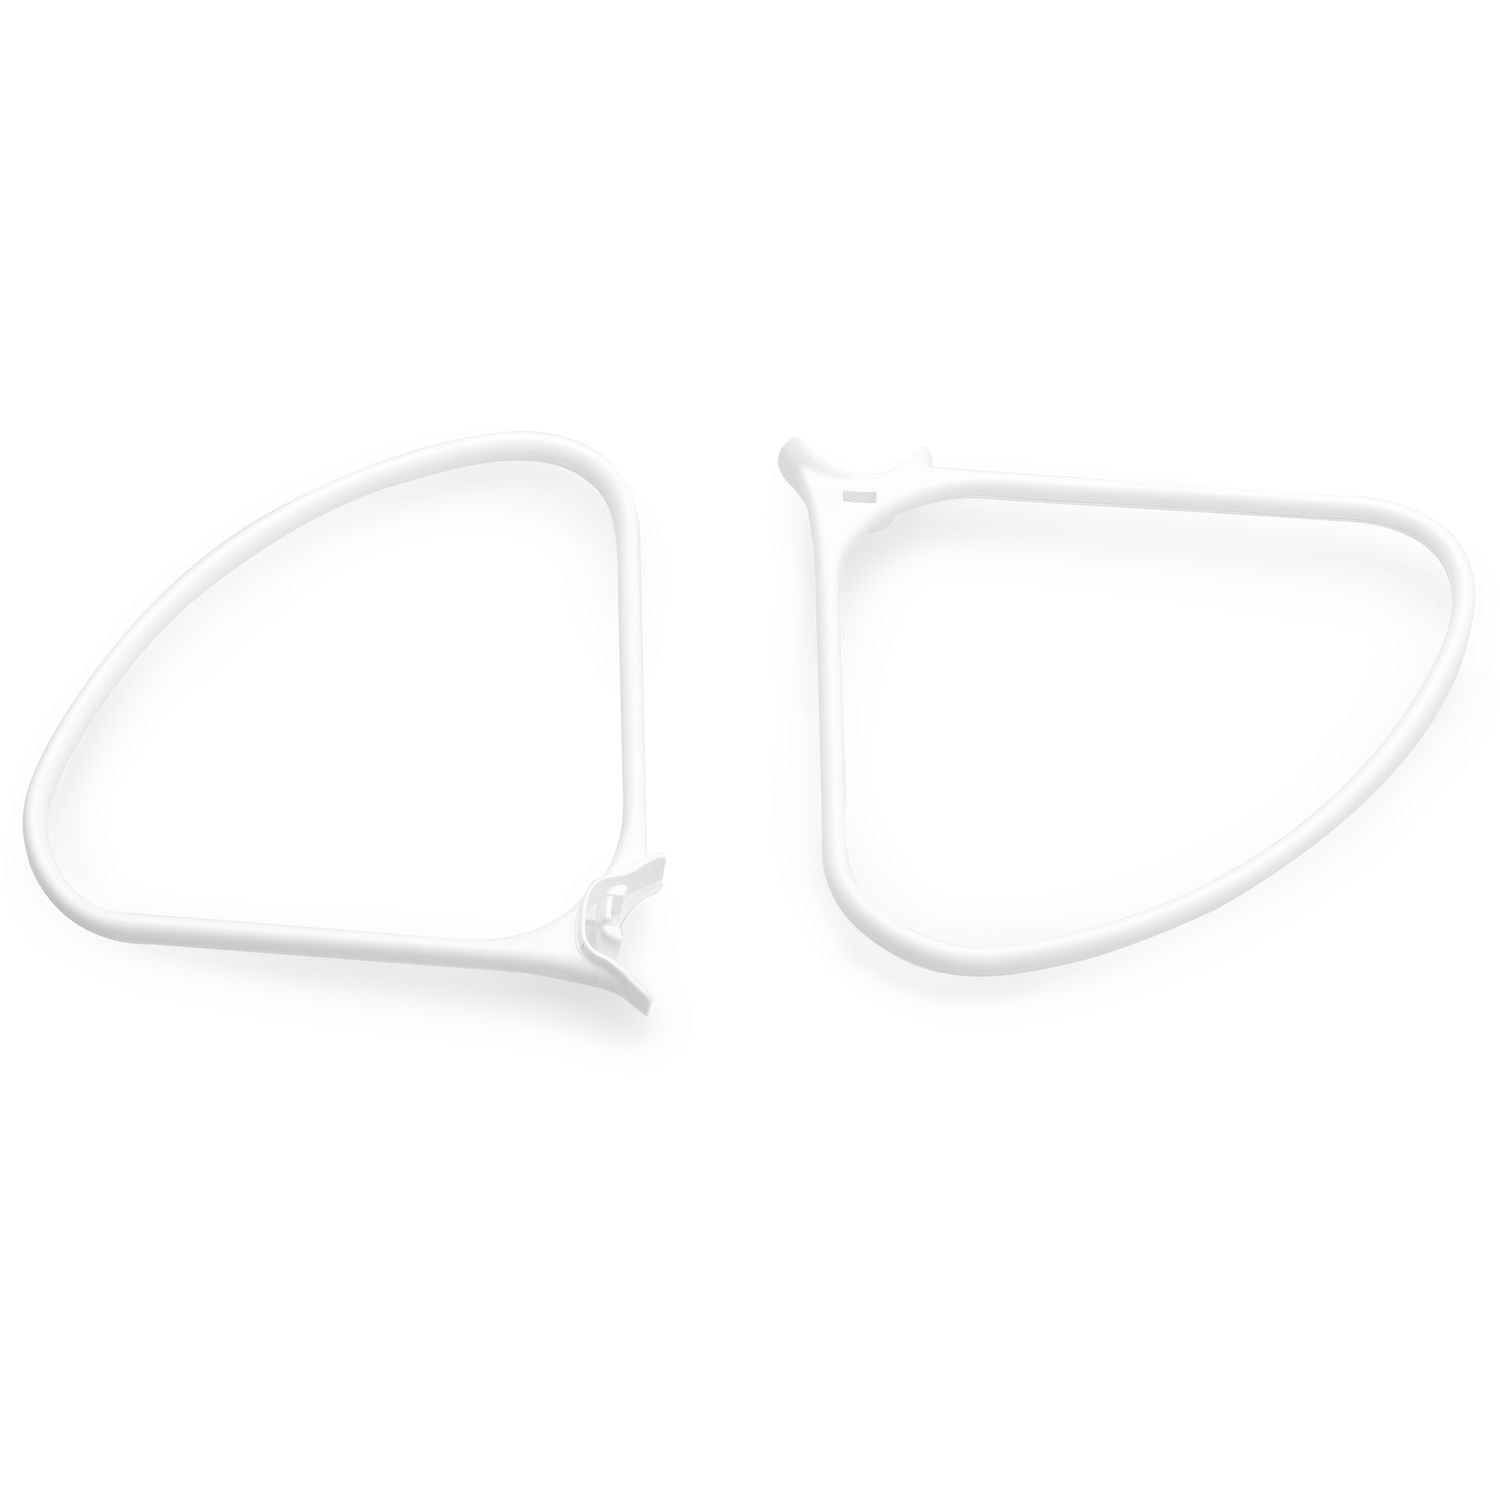 DJI Phantom 4 Pro/Adv Propeller Guard Part 62